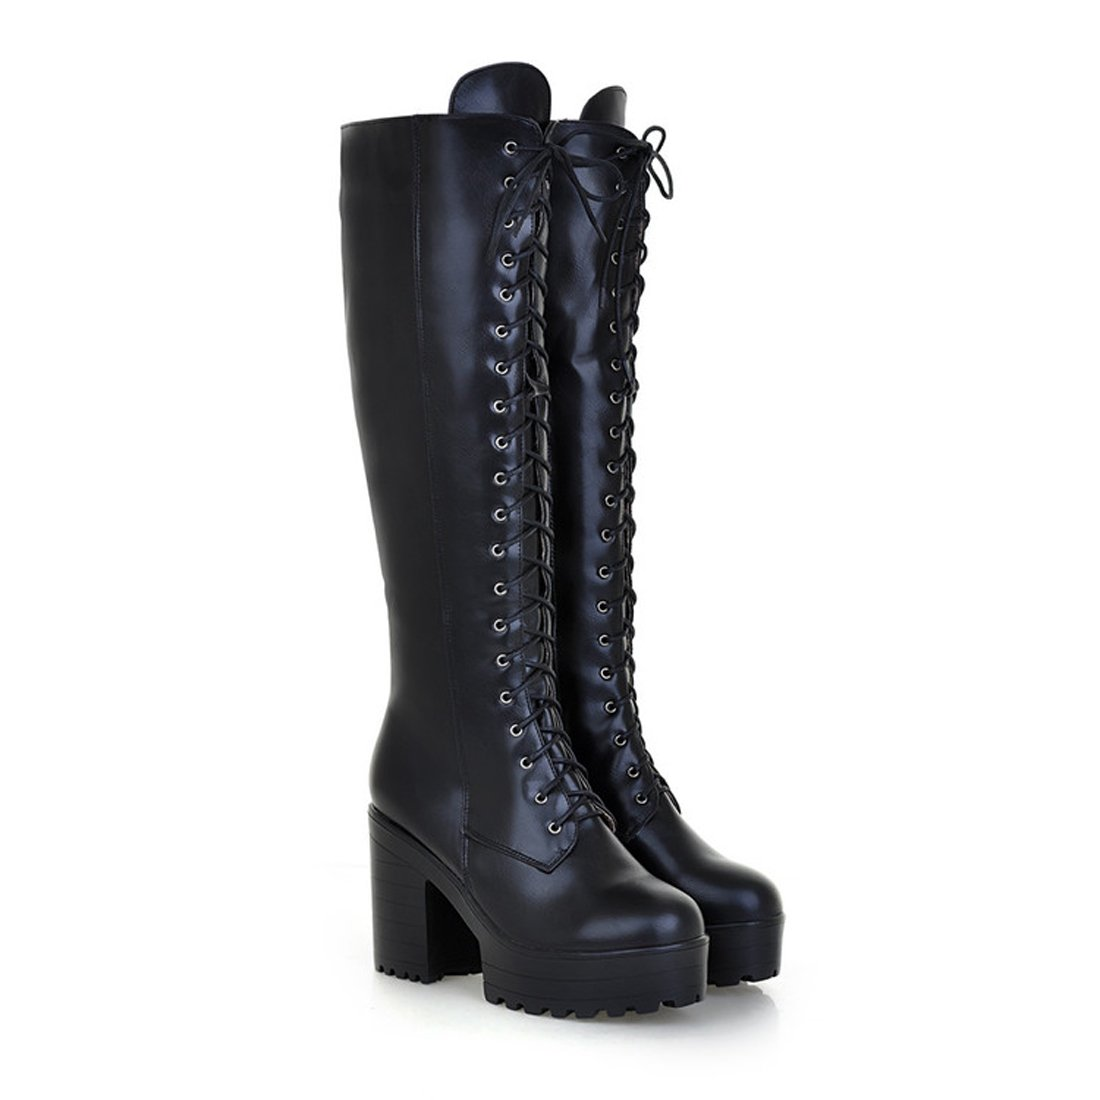 Mostrin Women's Lace-up Casual Chunky Heel Platform Knee High Combat Boot